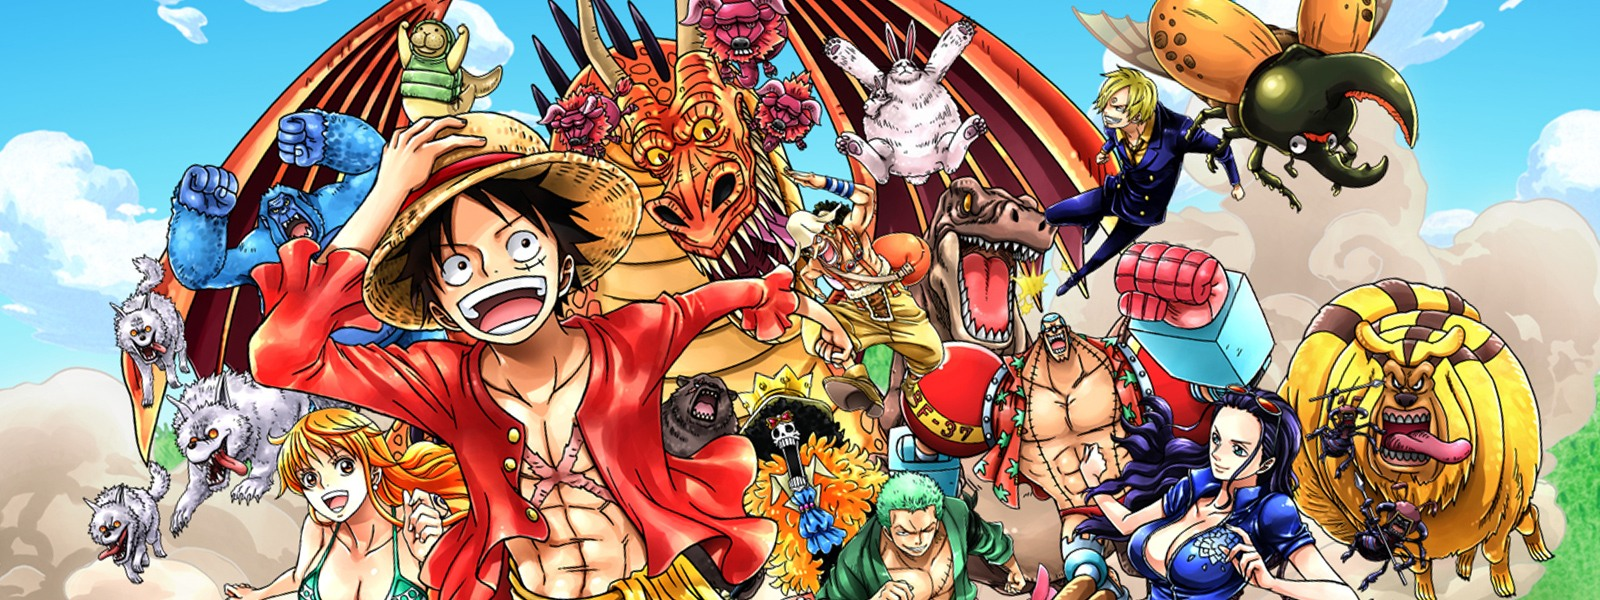 Chase Anime Japan War One Piece Fighting Action Pirates Adventure Art  Poster Print 4x6 8 5x11 11x17 18x24 24x36 36x48 sold by Chmelaeon